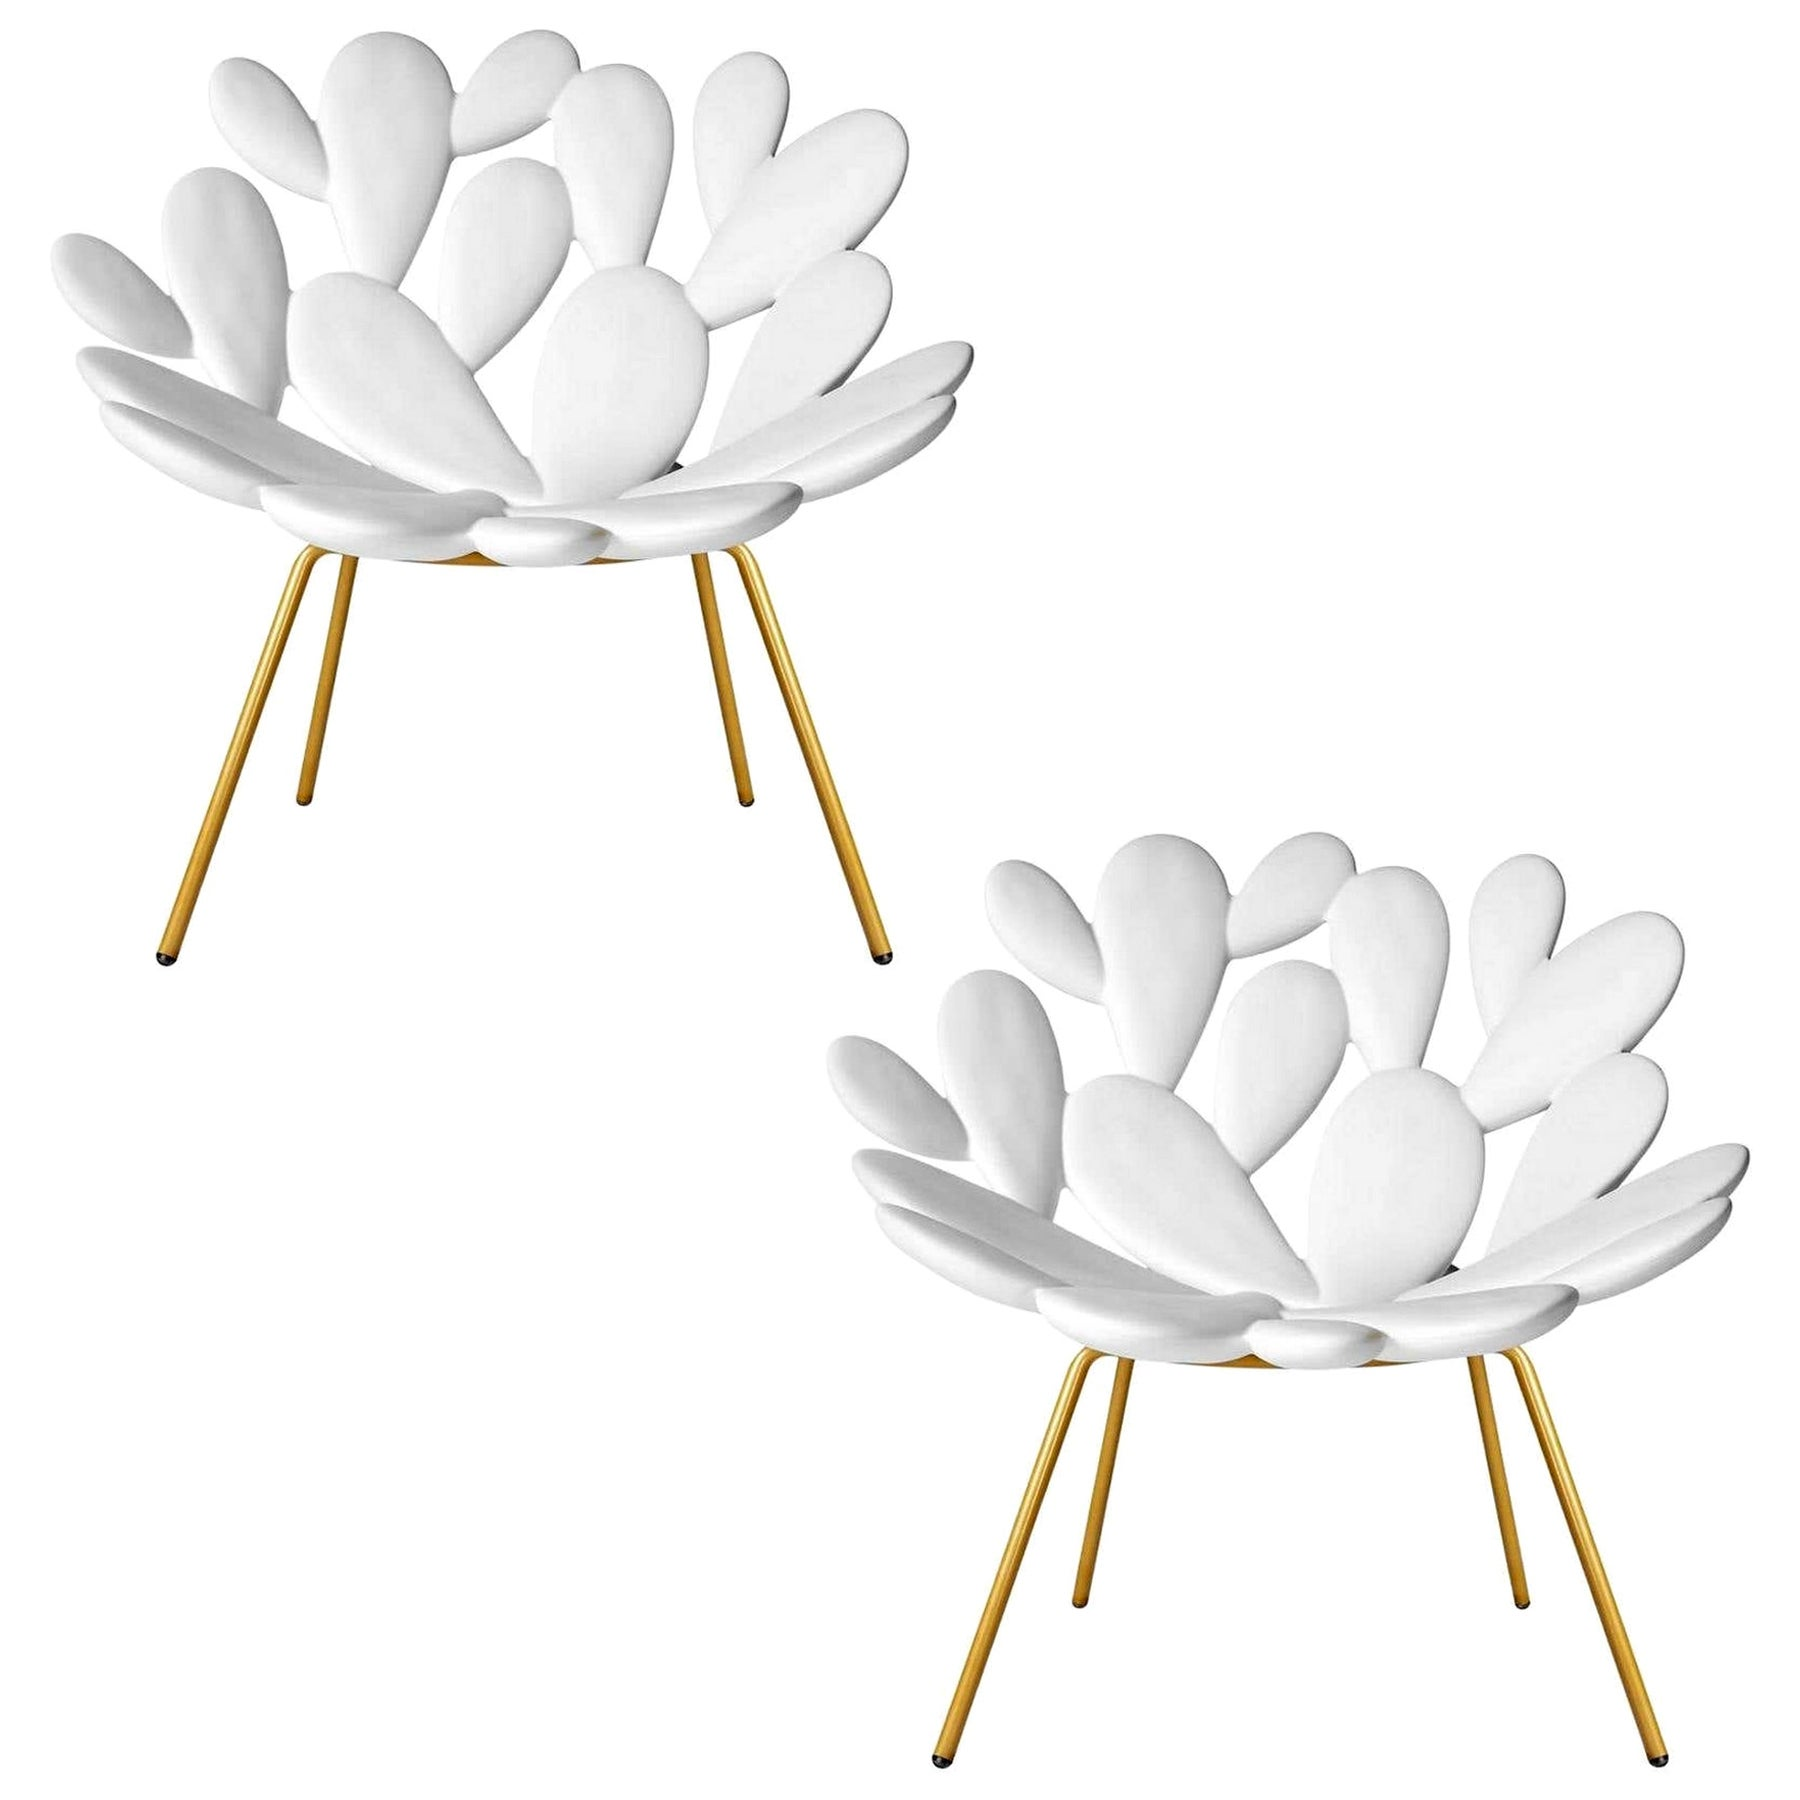 In Stock in Los Angeles, Set of 2 White and Brass Outdoor Cactus Chairs